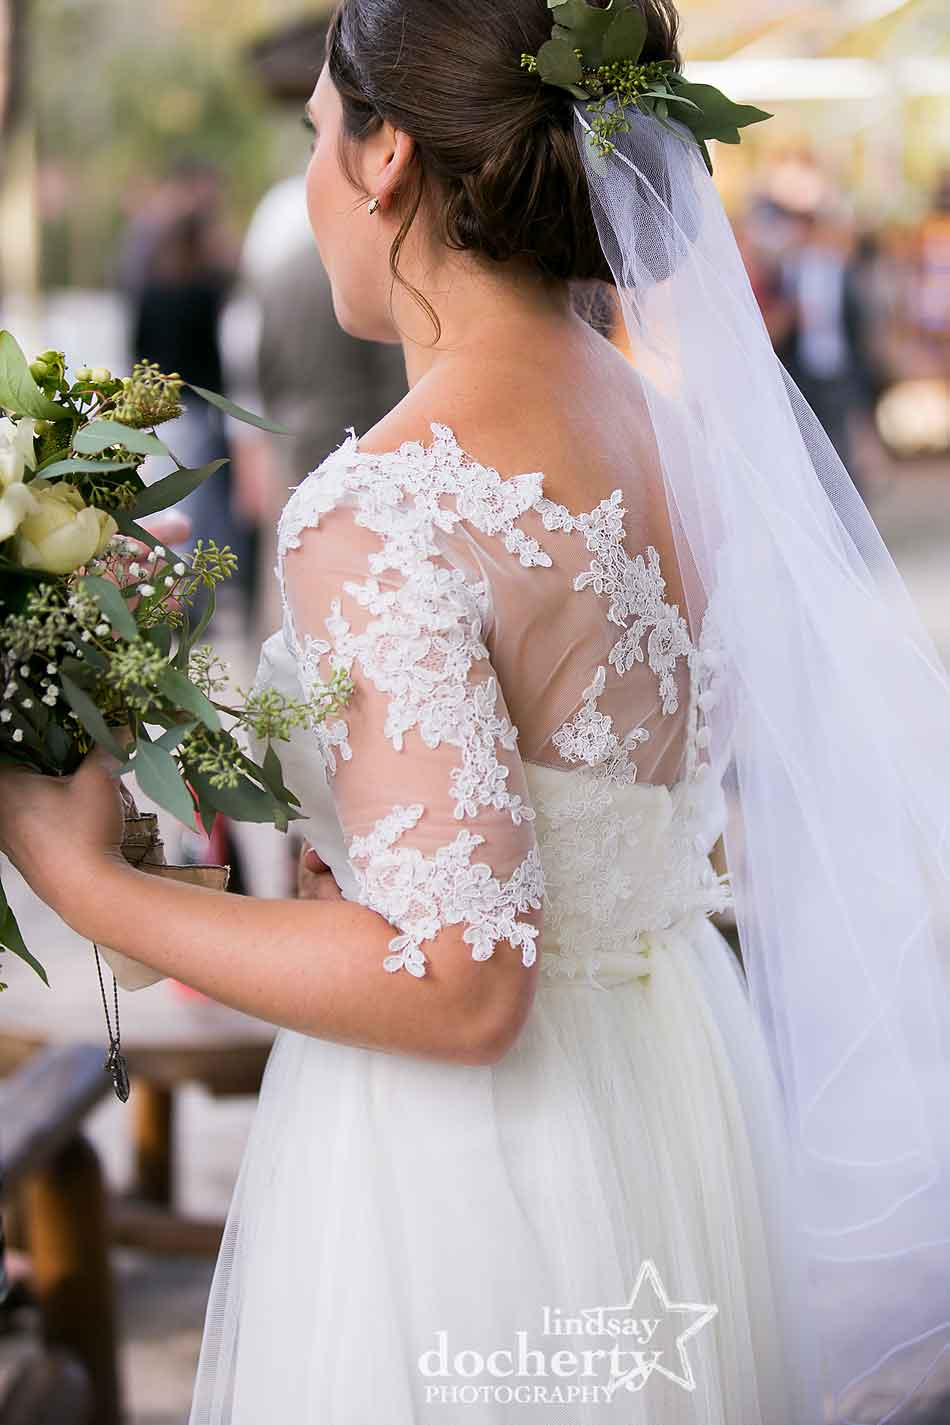 delicate-lace-top-of-brides-dress-with-eucalyptus-flowers-and-veil